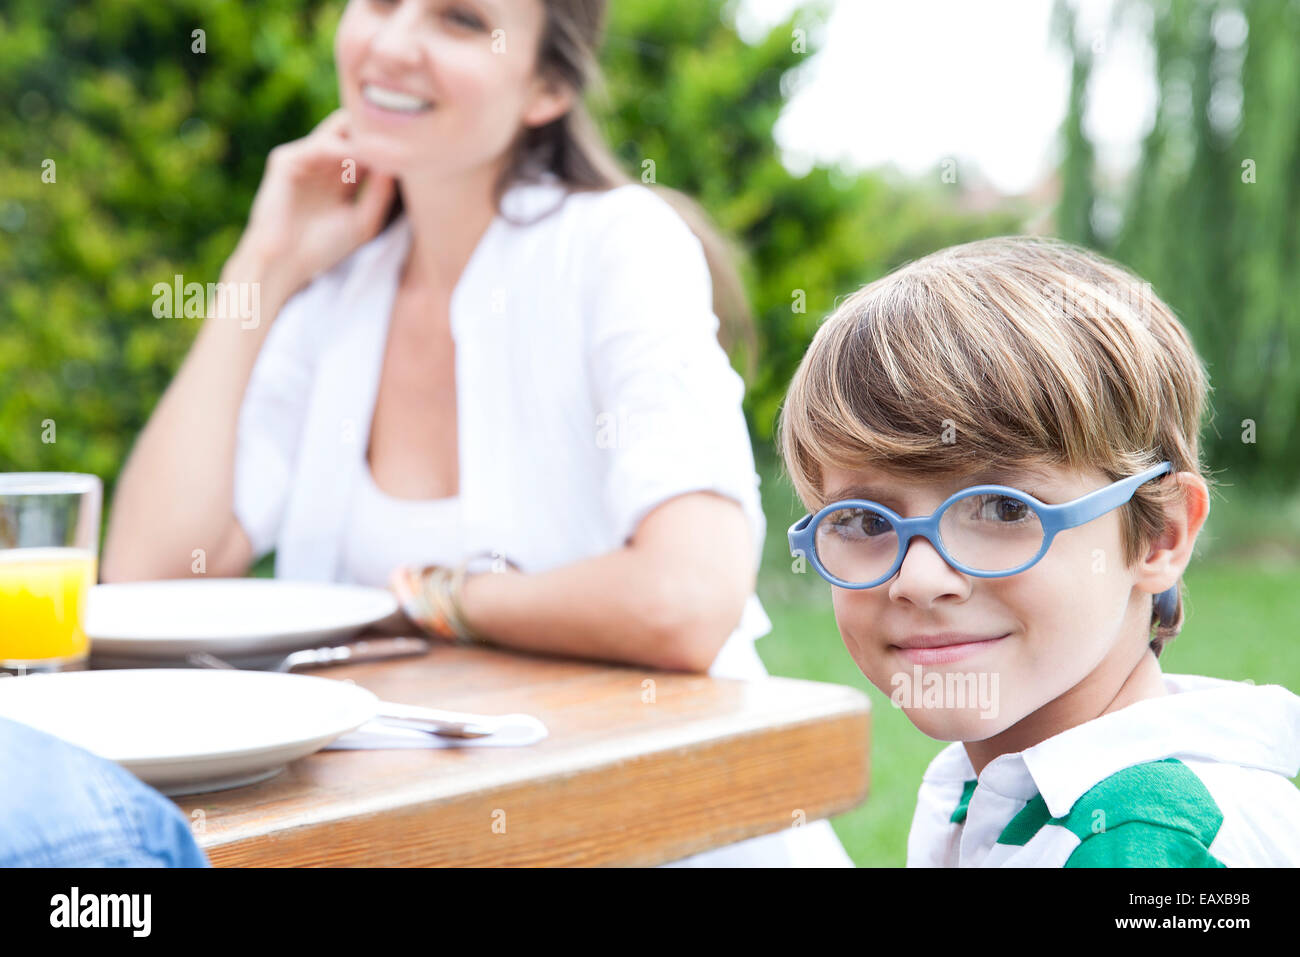 Little boy sitting at outdoor table with family, smiling at camera - Stock Image